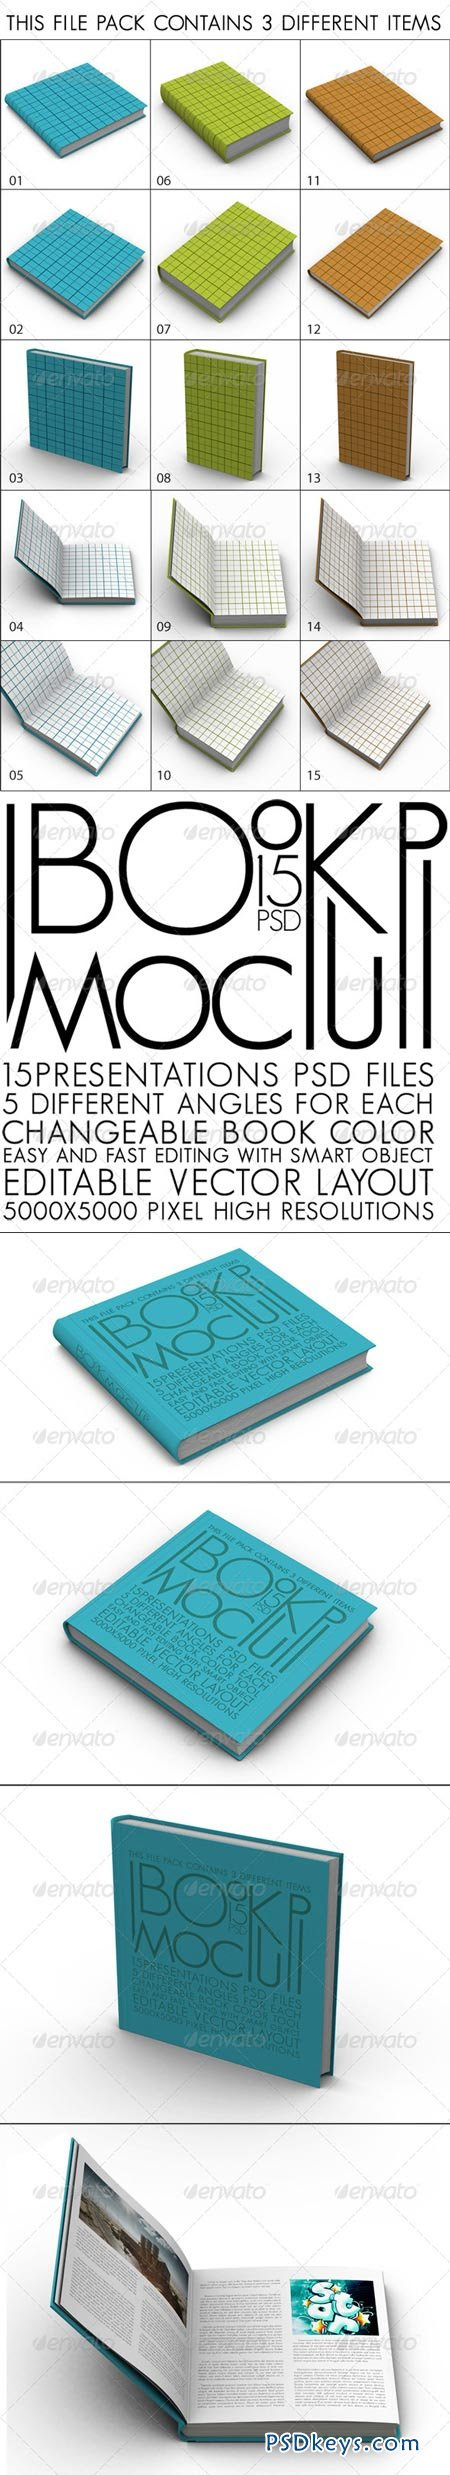 Book Pack Mock Up 4964252